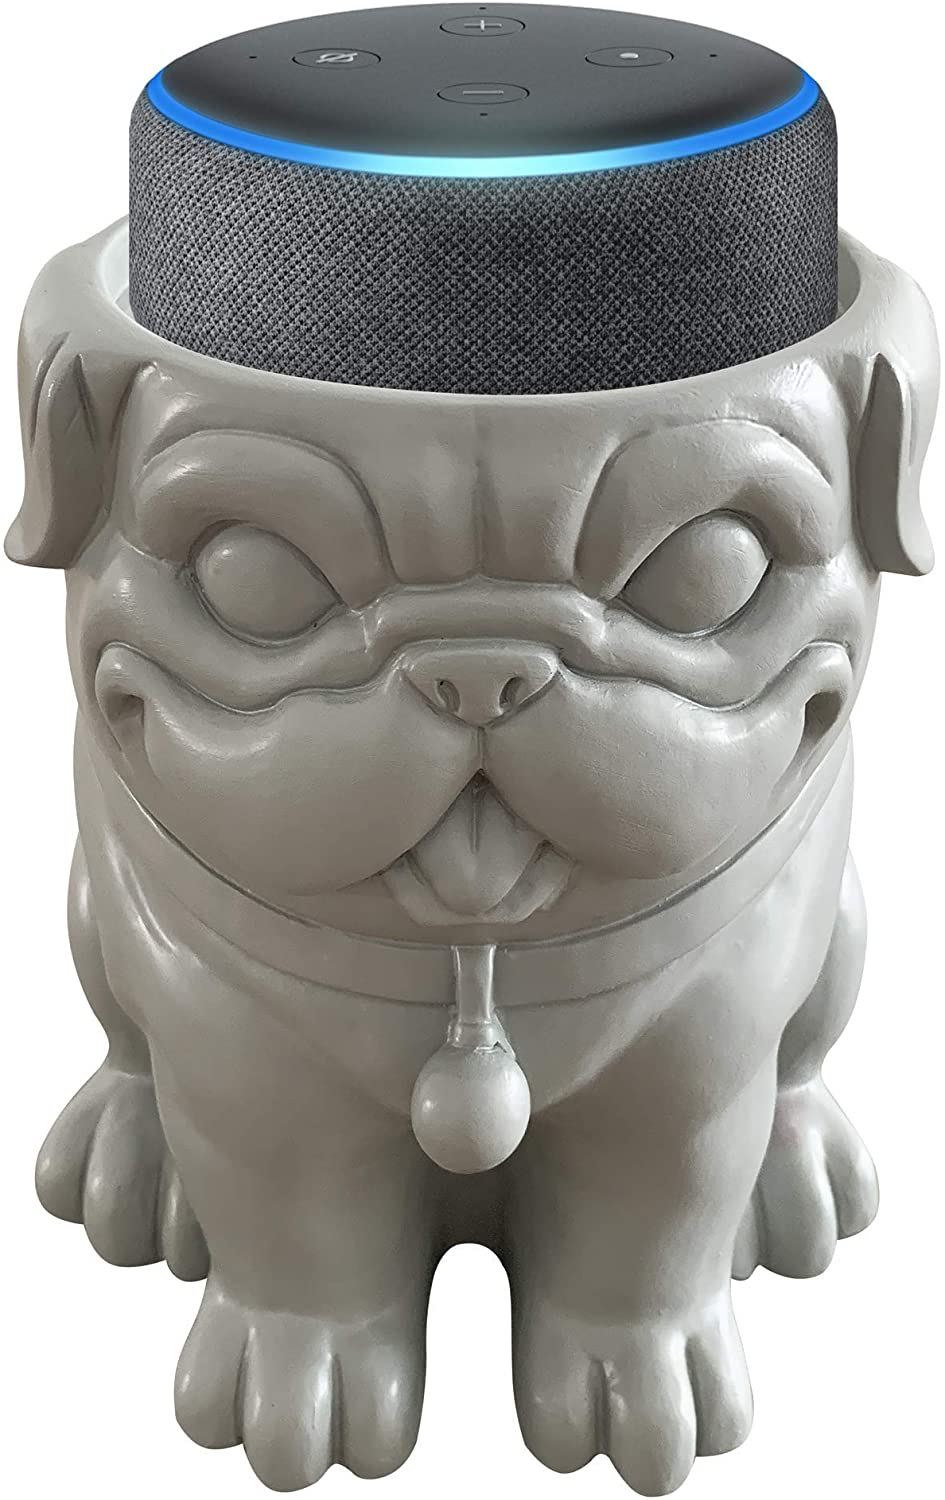 Dekodots Smart Speaker Table Stand (Dog) - Decorative Holder for DHgate Echo Dot or Google Home Mini - Portable Design, No Sound or Microphone Interference - Durable Poly-Resin